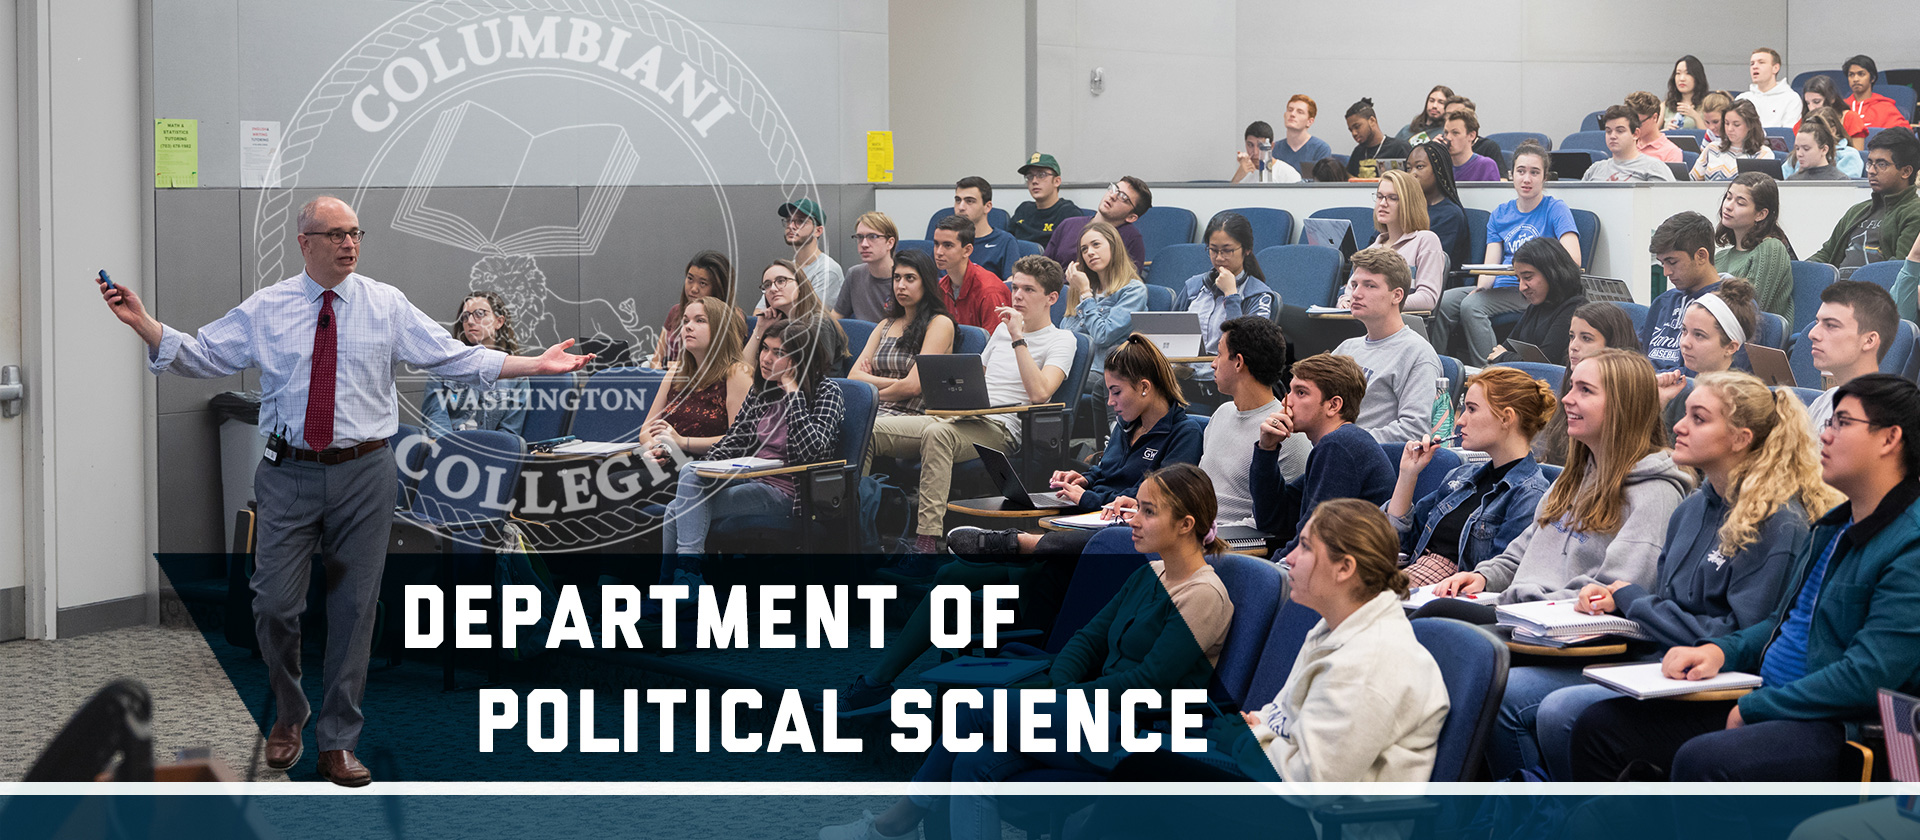 Professor Alexander Downes lectures in a large Intro to International Politics seminar. Text: Department of Political Science, Columbian College of Arts and Sciences seal